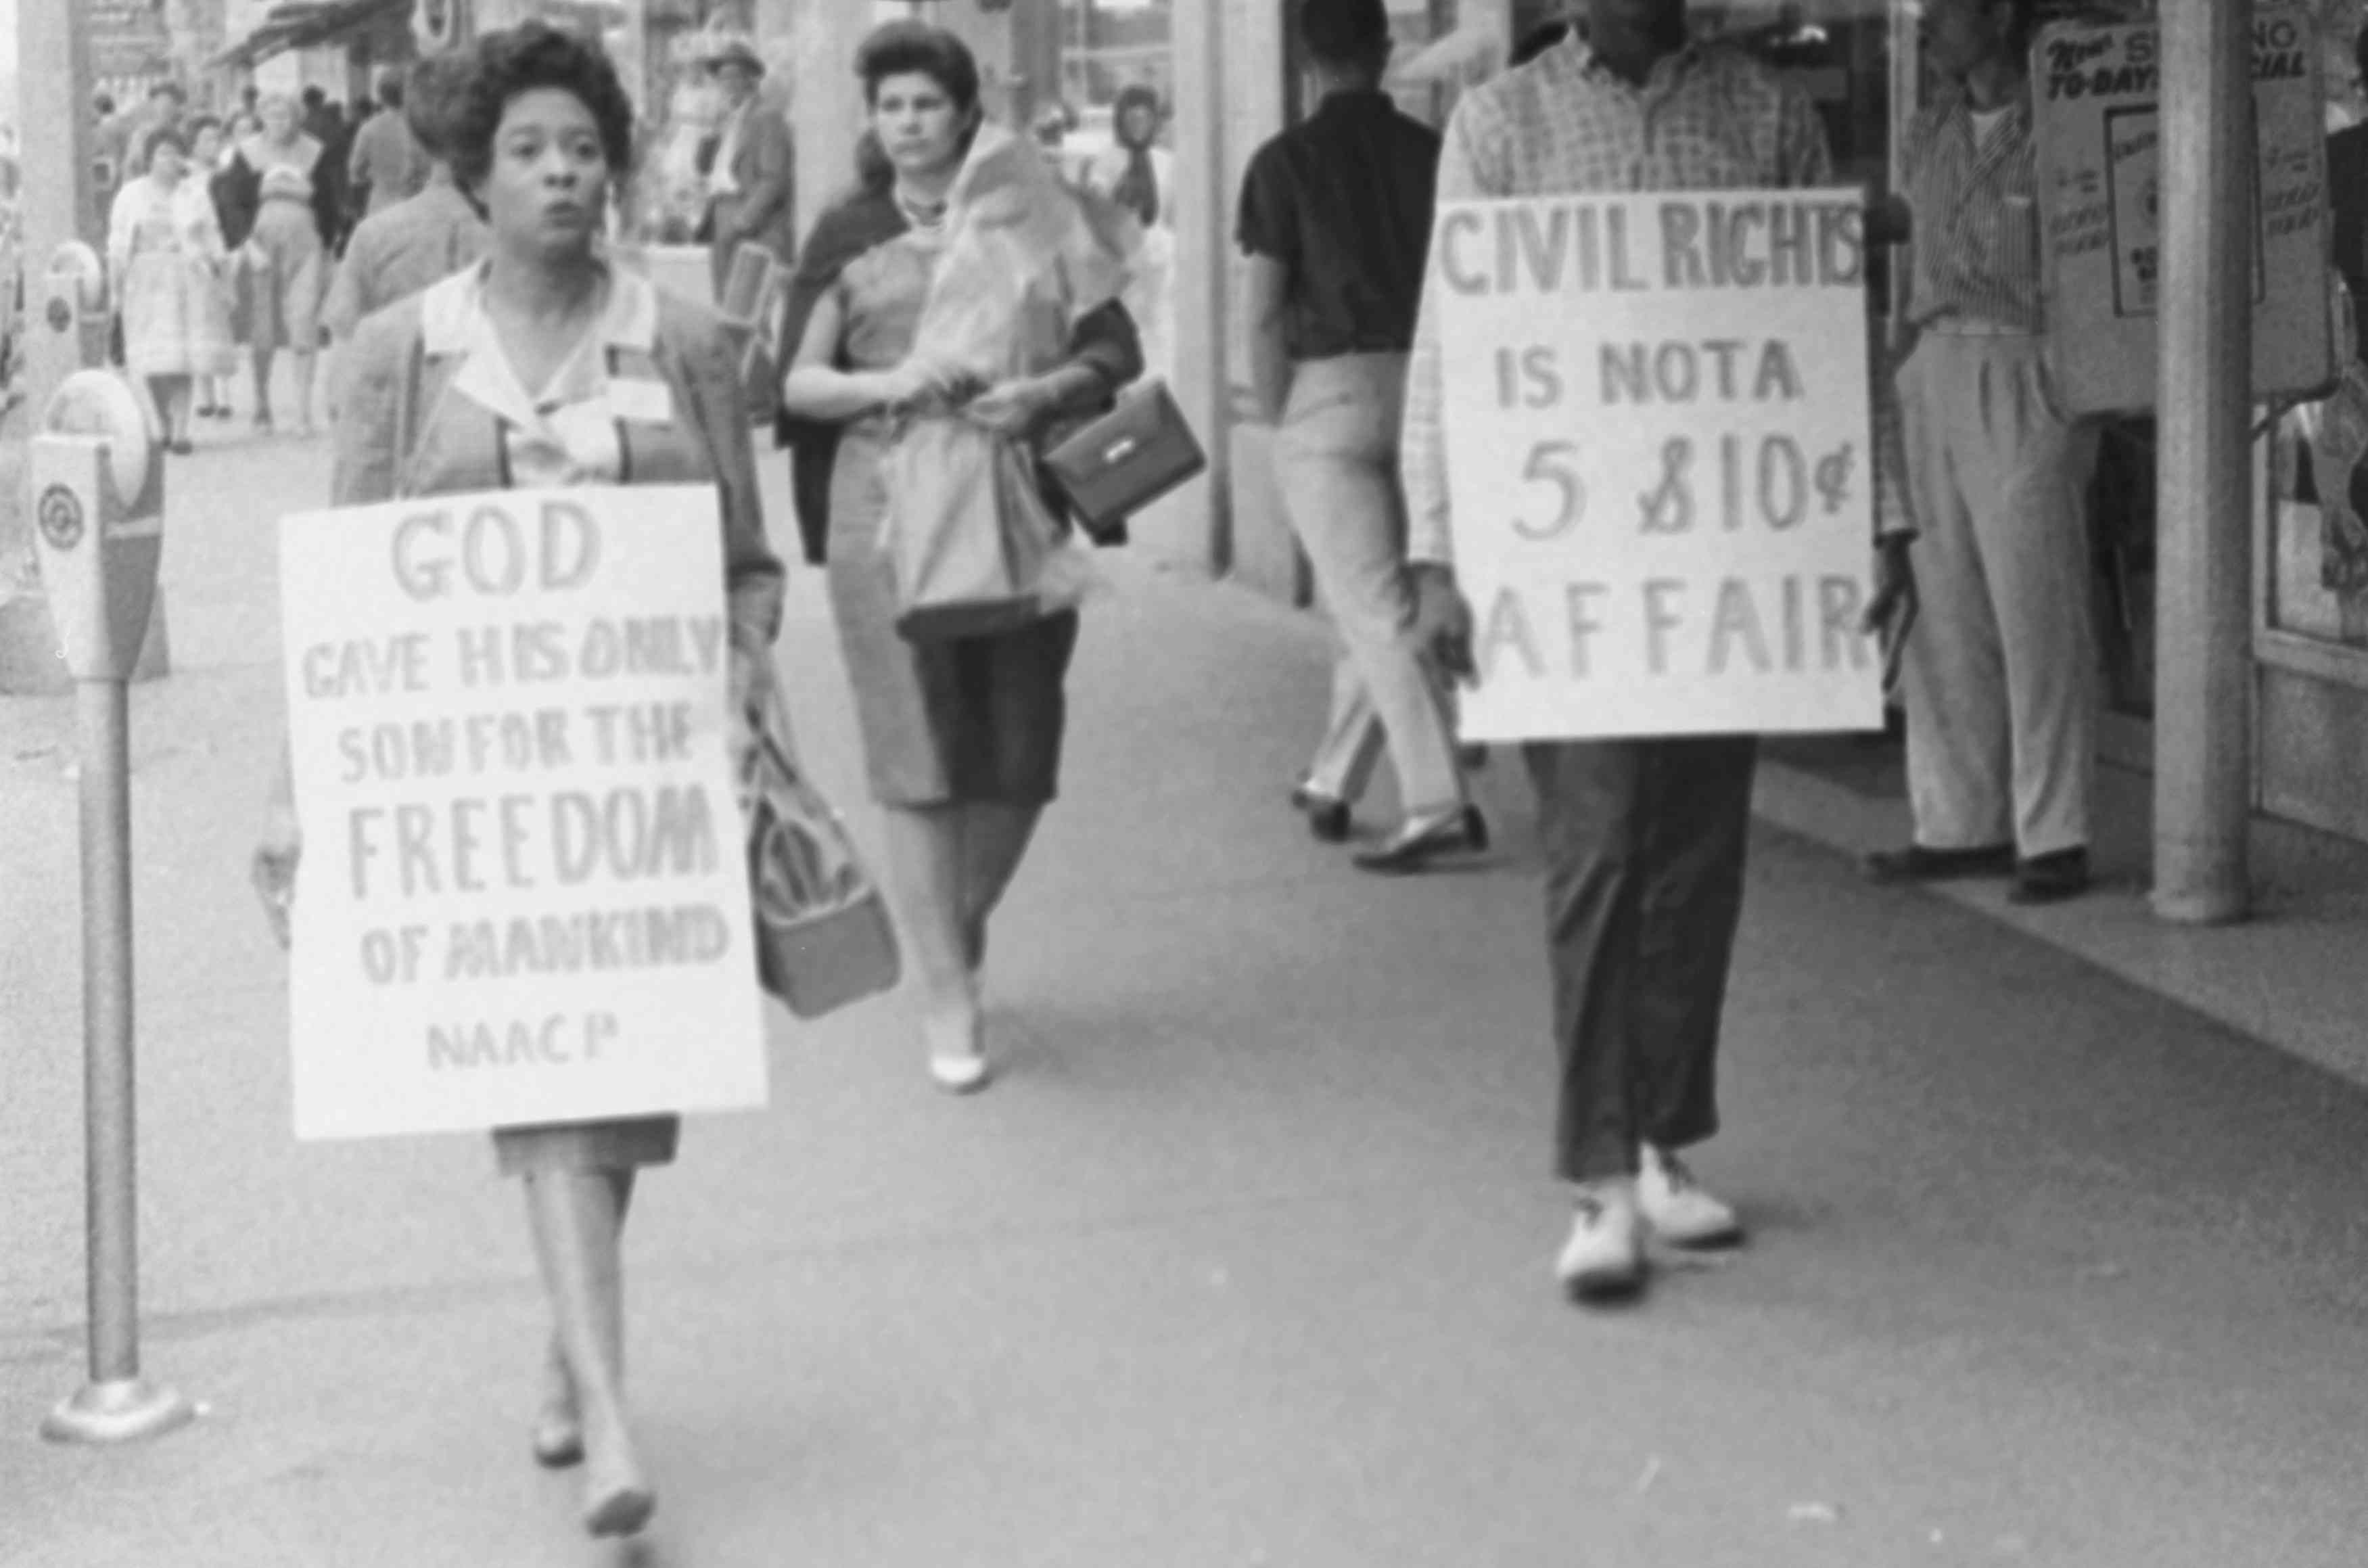 Daisy Bates holding a sign that reads